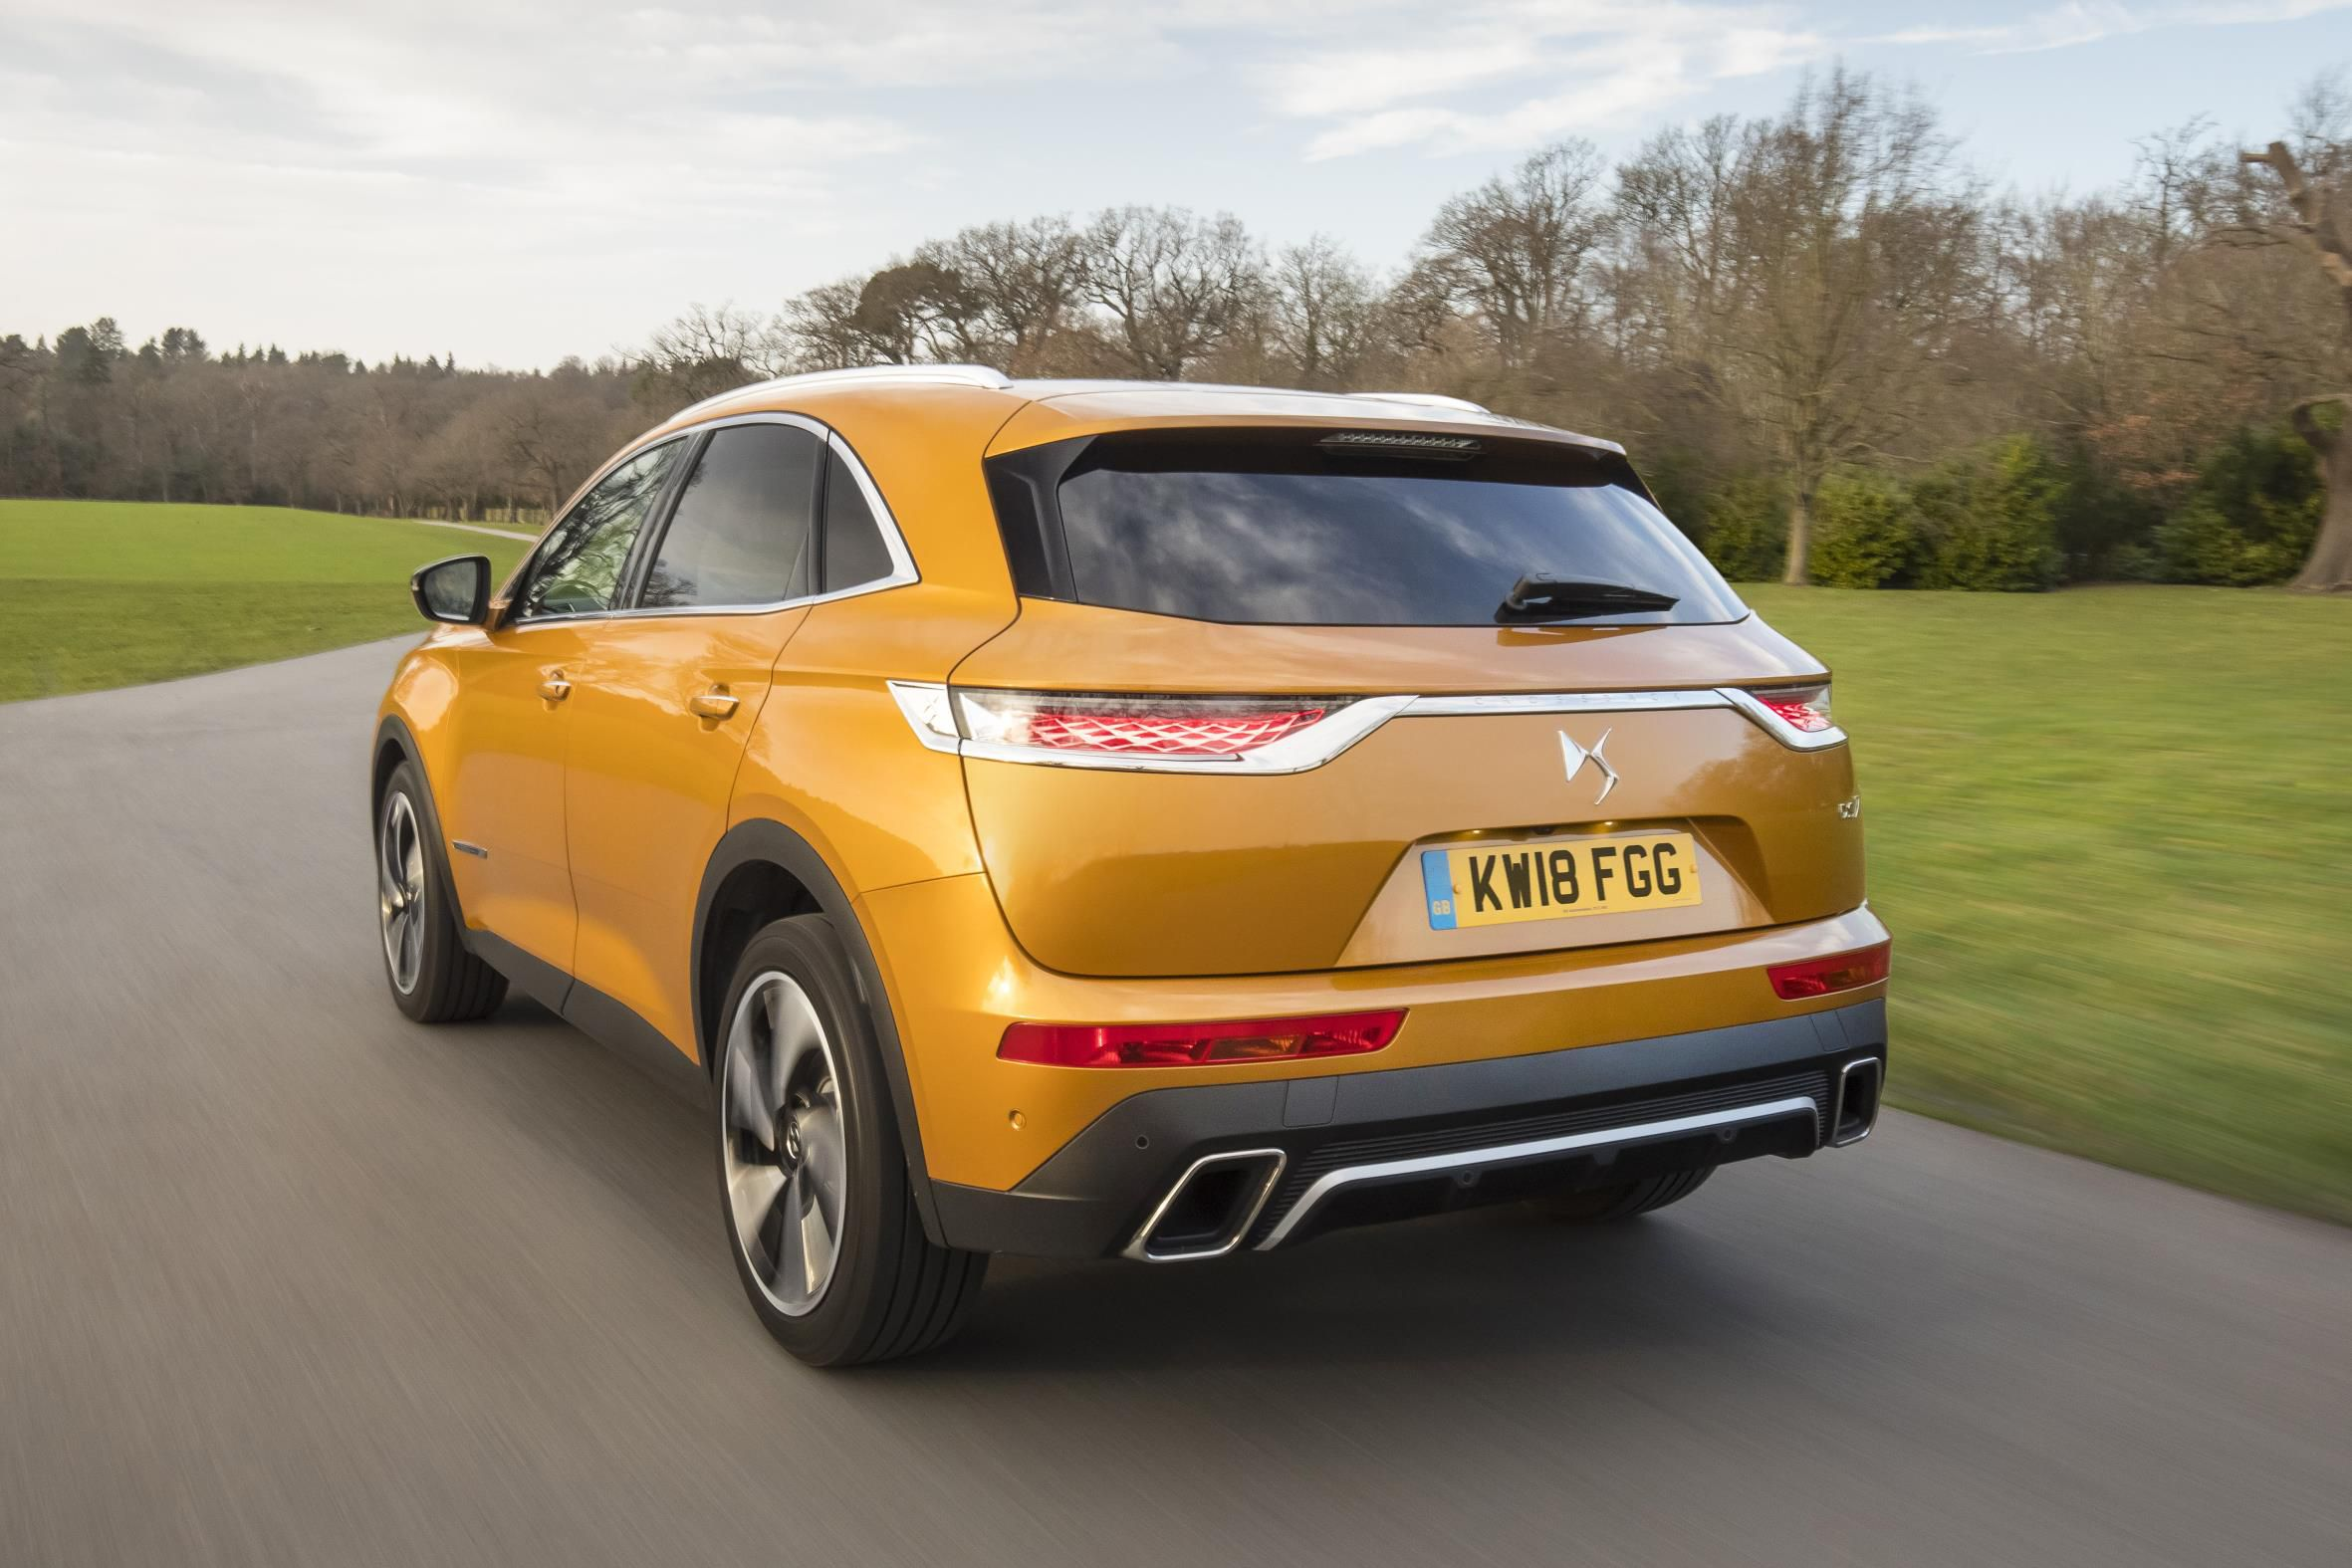 DS 7 Crossback driving away on a country road